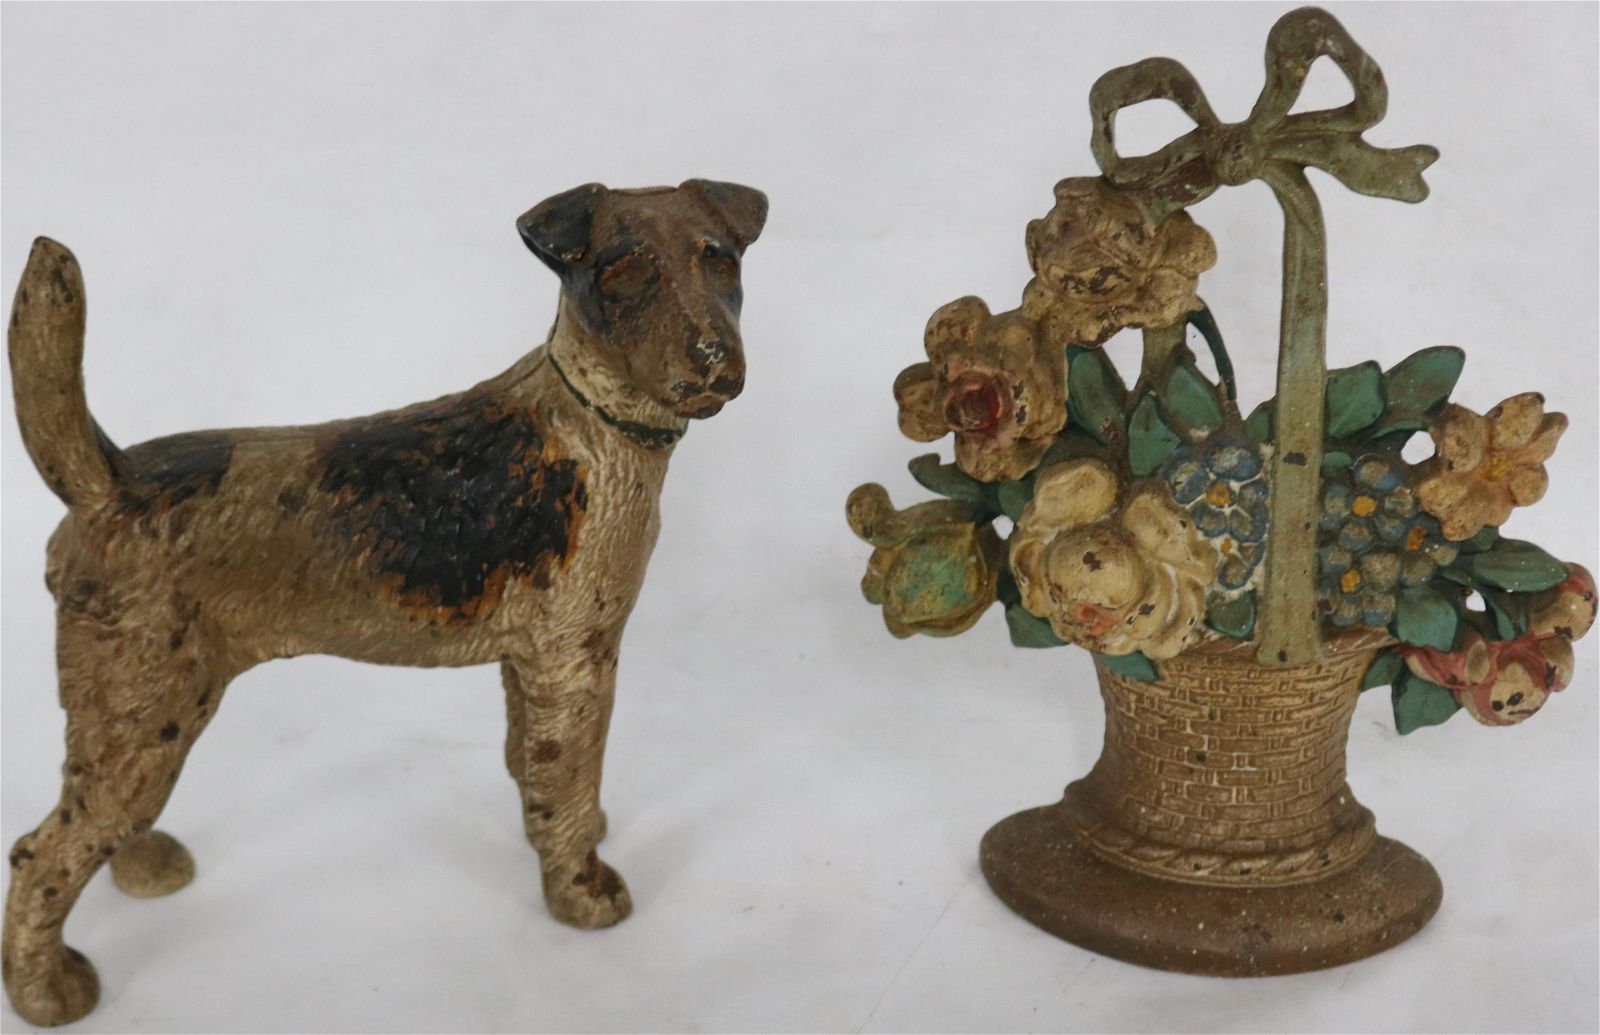 TWO EARLY 20TH C. CAST IRON DOORSTOPS, ORIGINAL